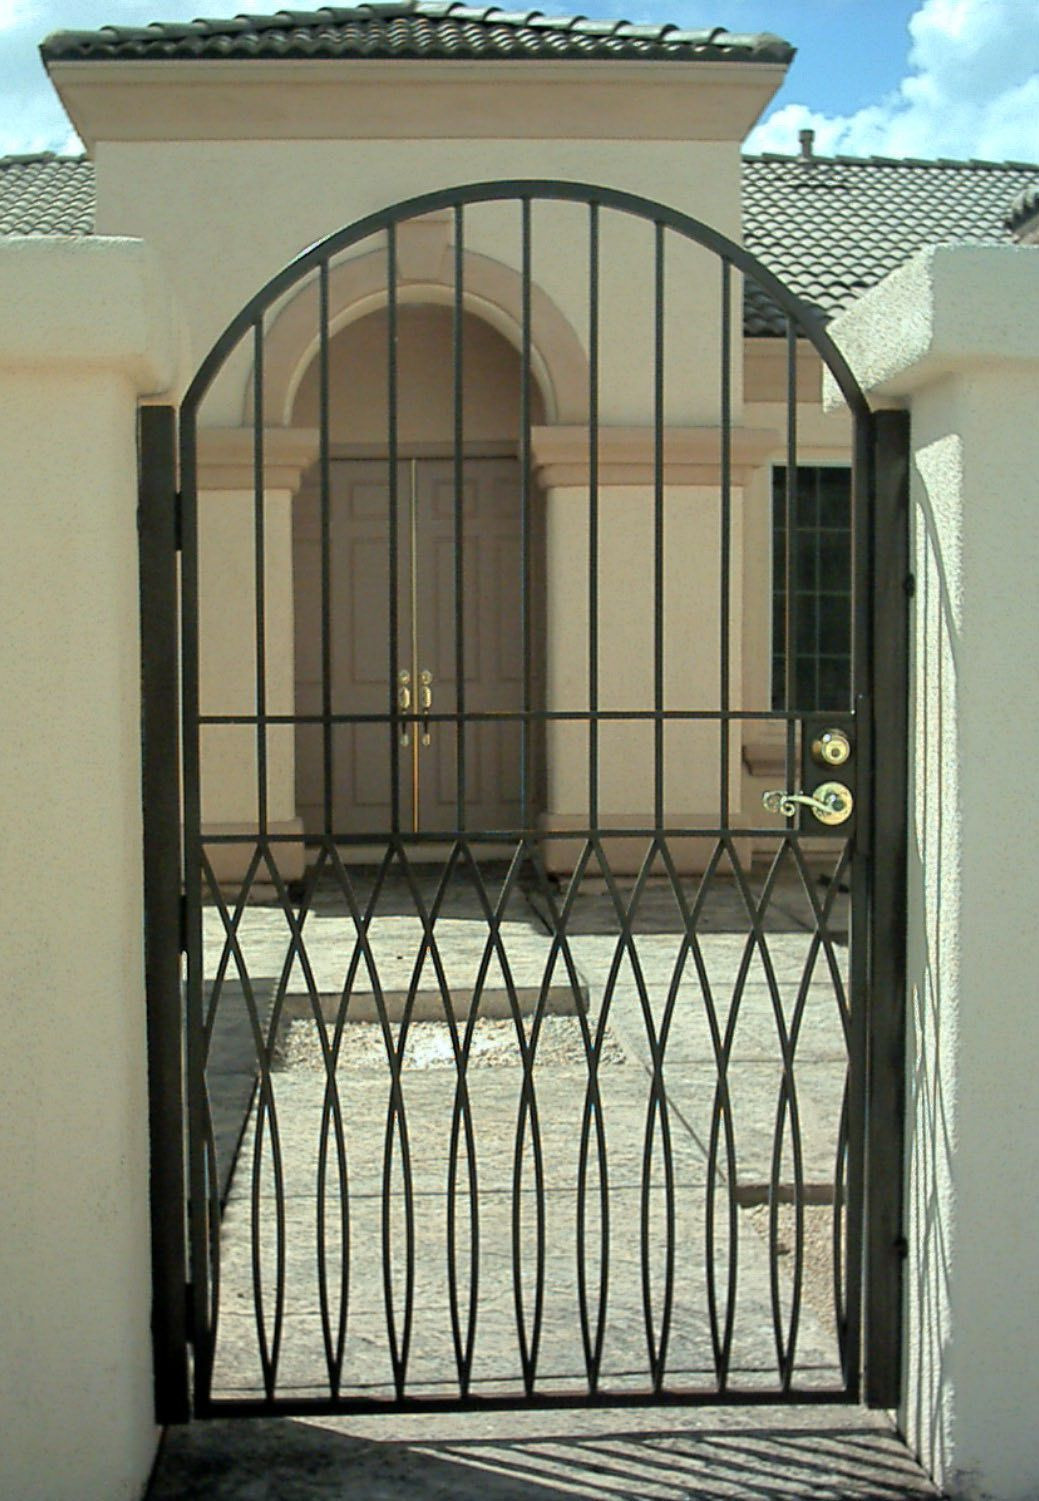 Simple Gate Designs for Homes Best Of Depiction Of Iron Gate Designs for Homes